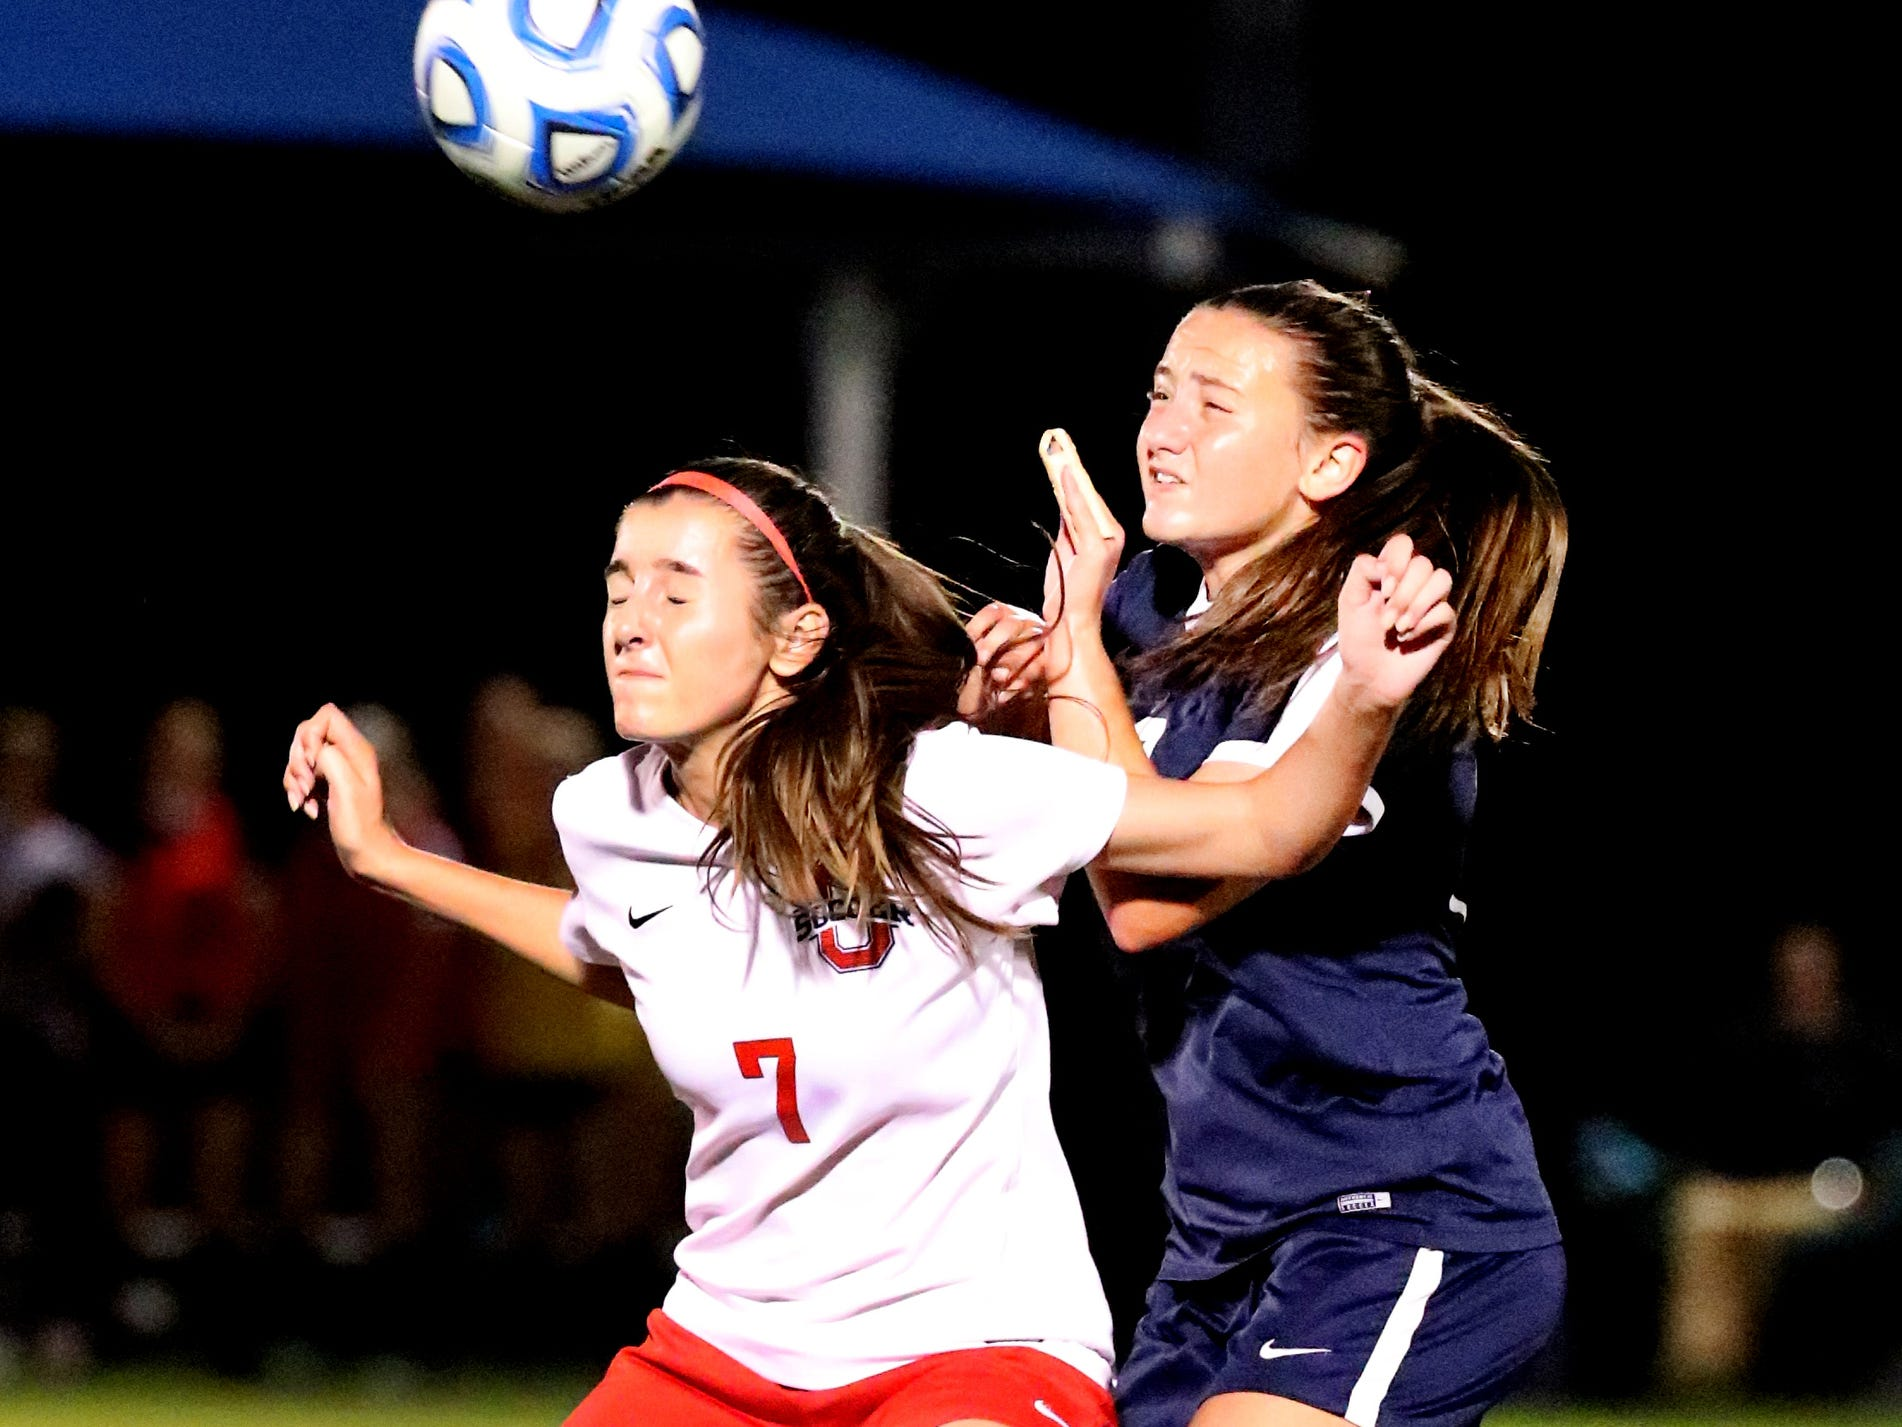 Oakland's Lainey Callis (7) and Siegel's Ashton Miller (20) go after the same ball in the semifinals of the 7-AAA Soccer Tournament, on Tuesday,  Oct. 09, 2018 at the Siegel Soccer Complex.